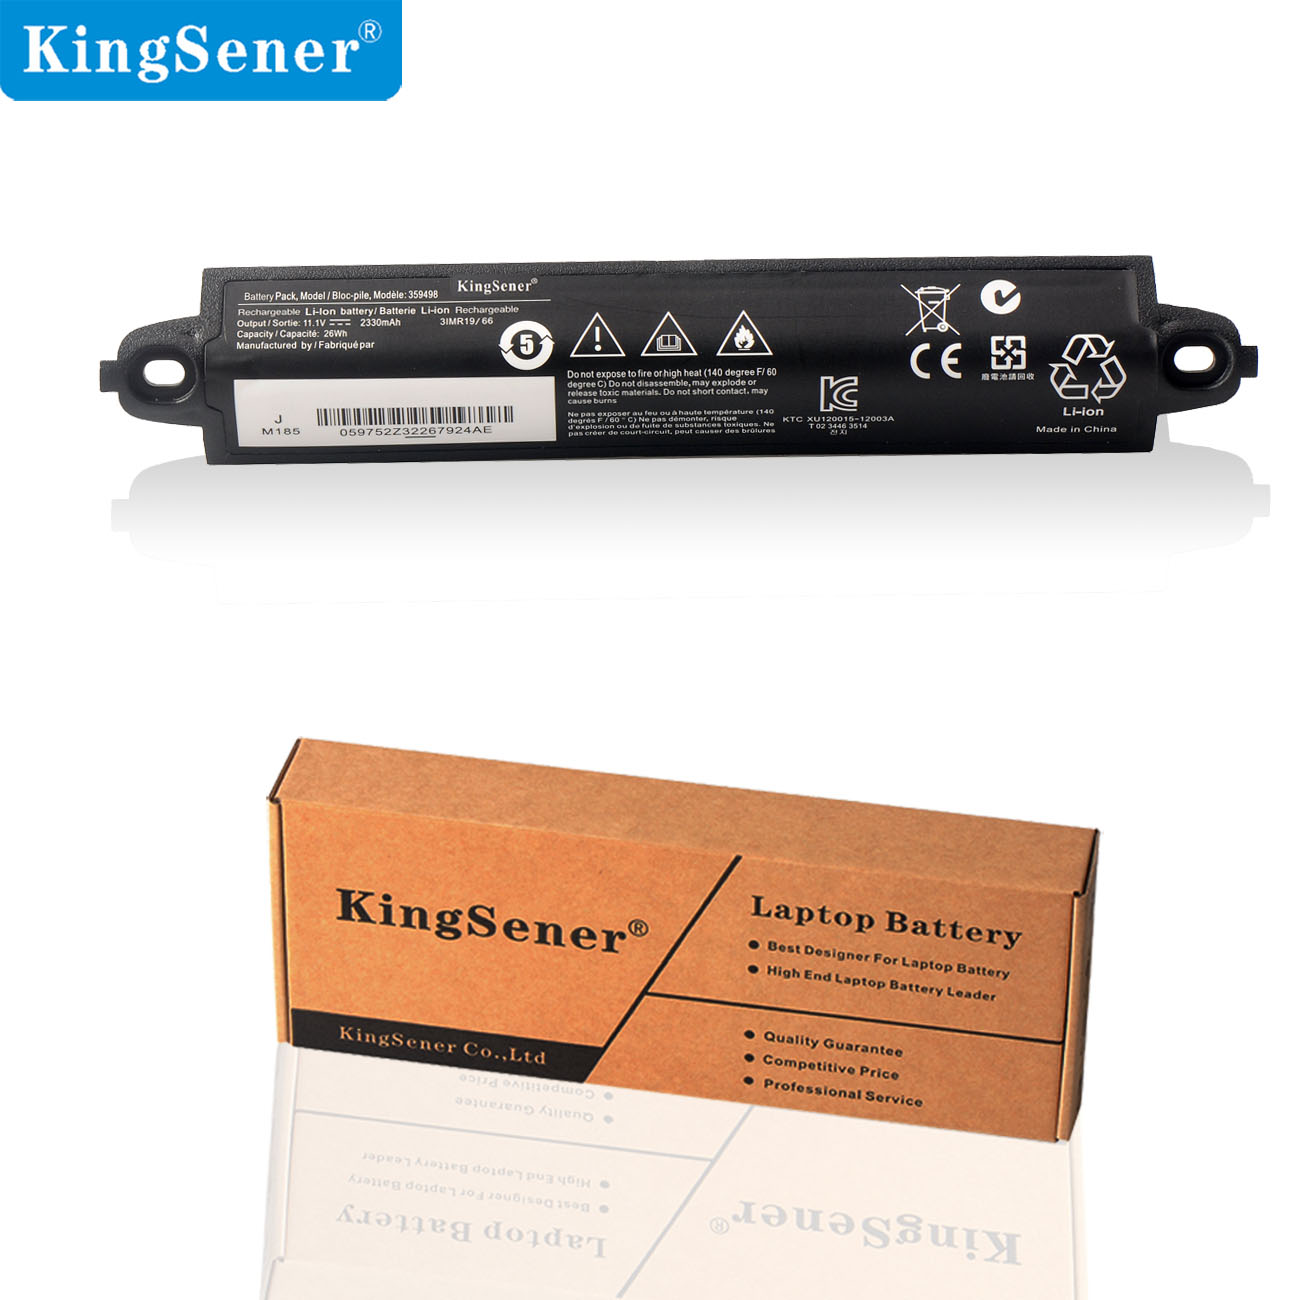 KingSener 359498 Battery For Bose SoundLink III 330107A 359495 330105 For Bose Soundlink Bluetooth Mobile Speaker II 404600